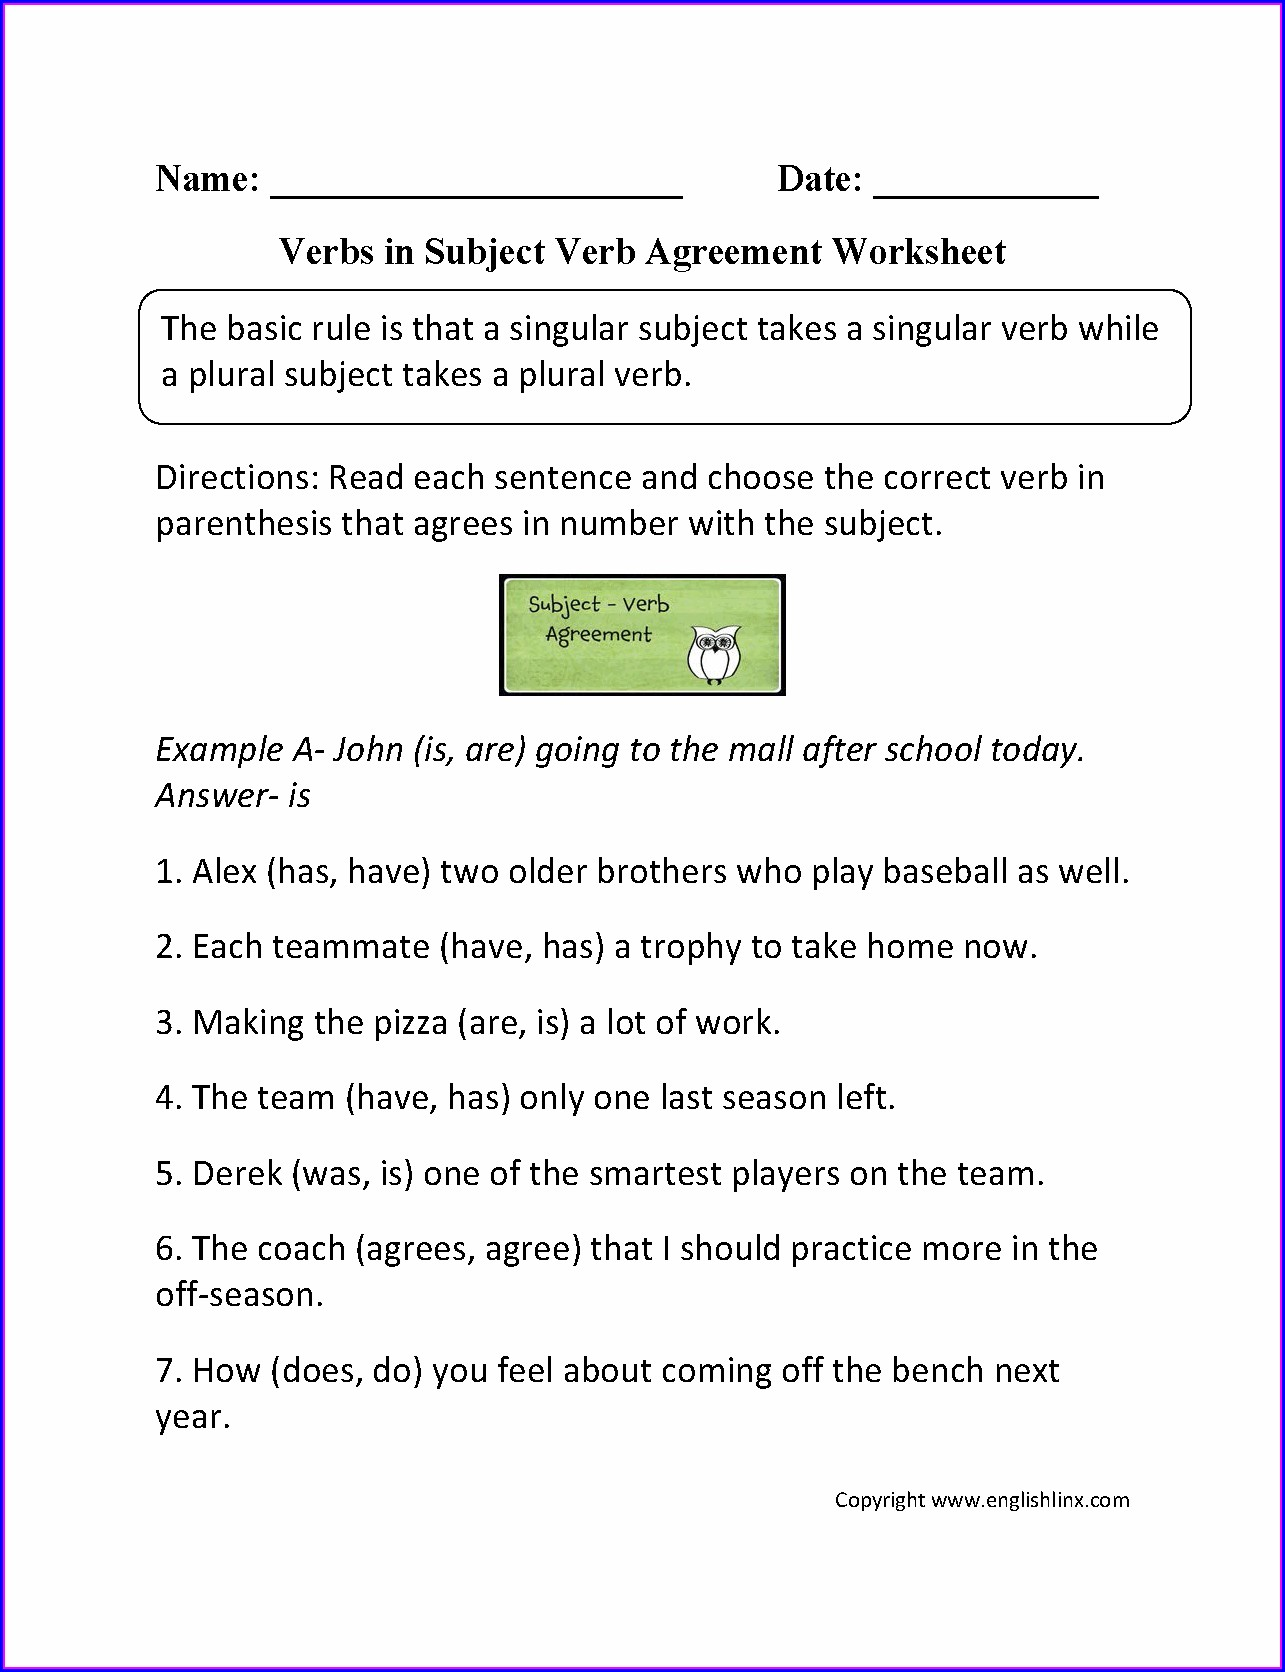 Subject Verb Agreement Worksheets Common Core